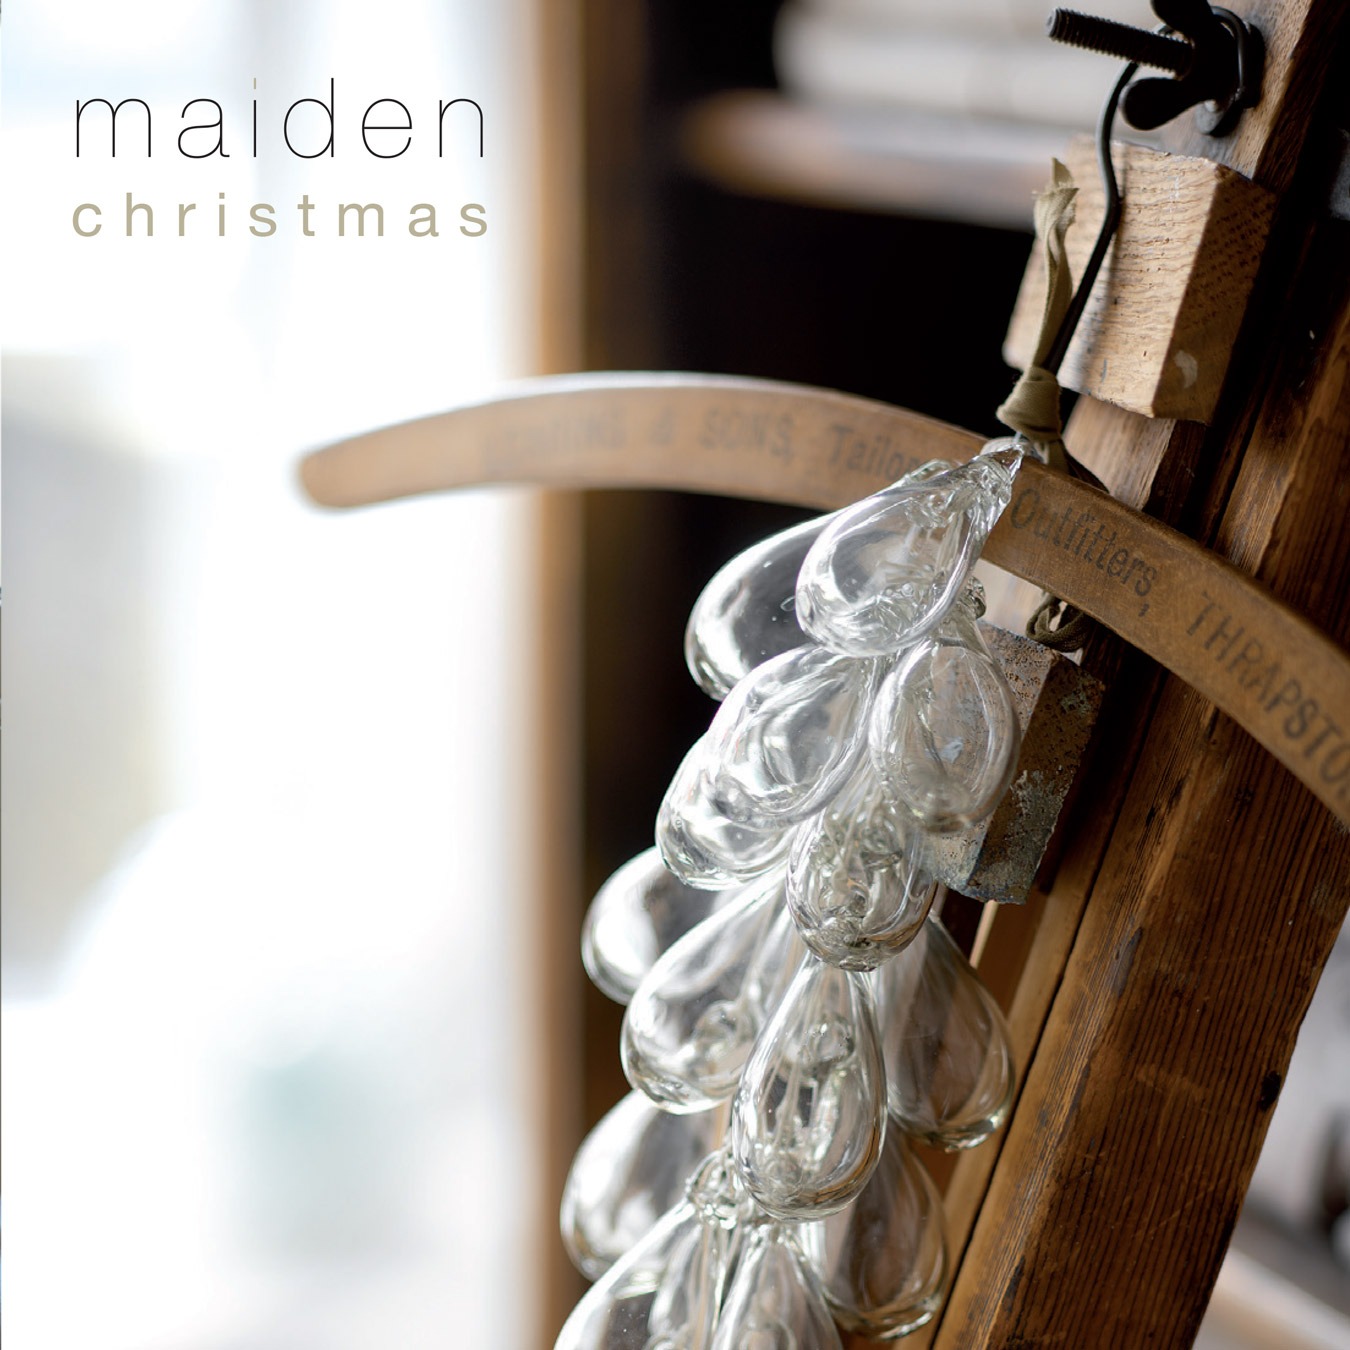 03-Maiden-square-images